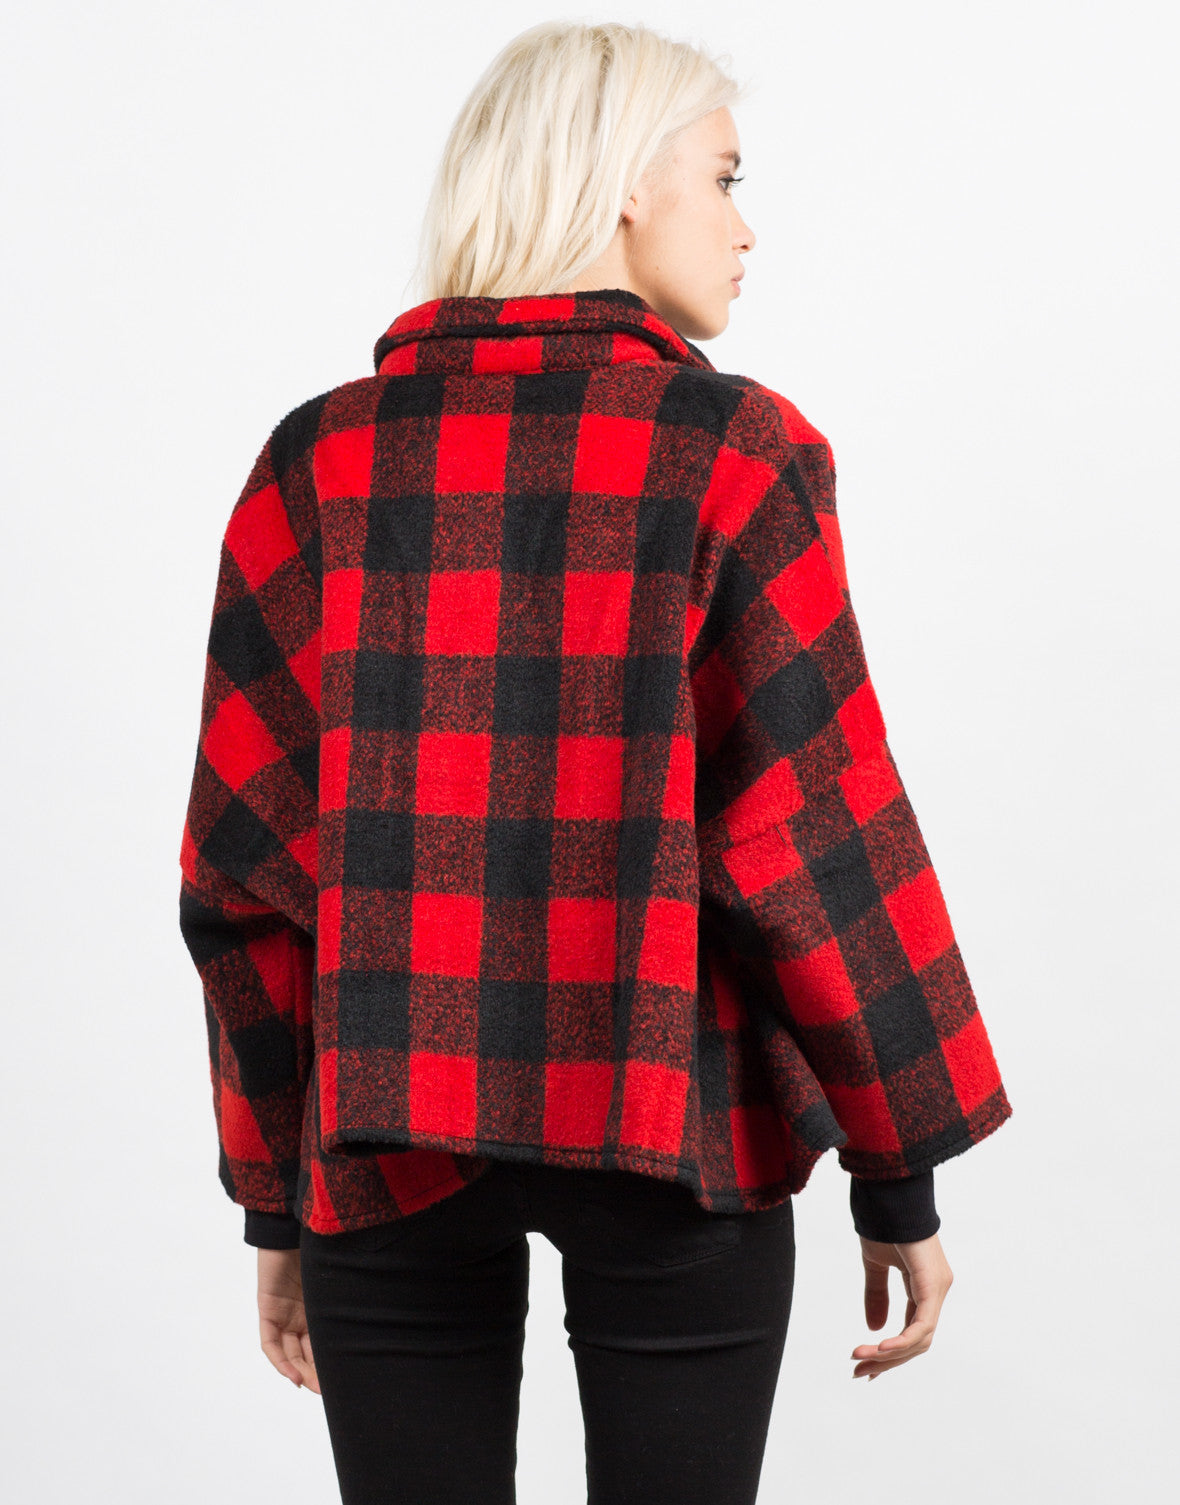 Back View of Plaid Oversized Button Up Coat